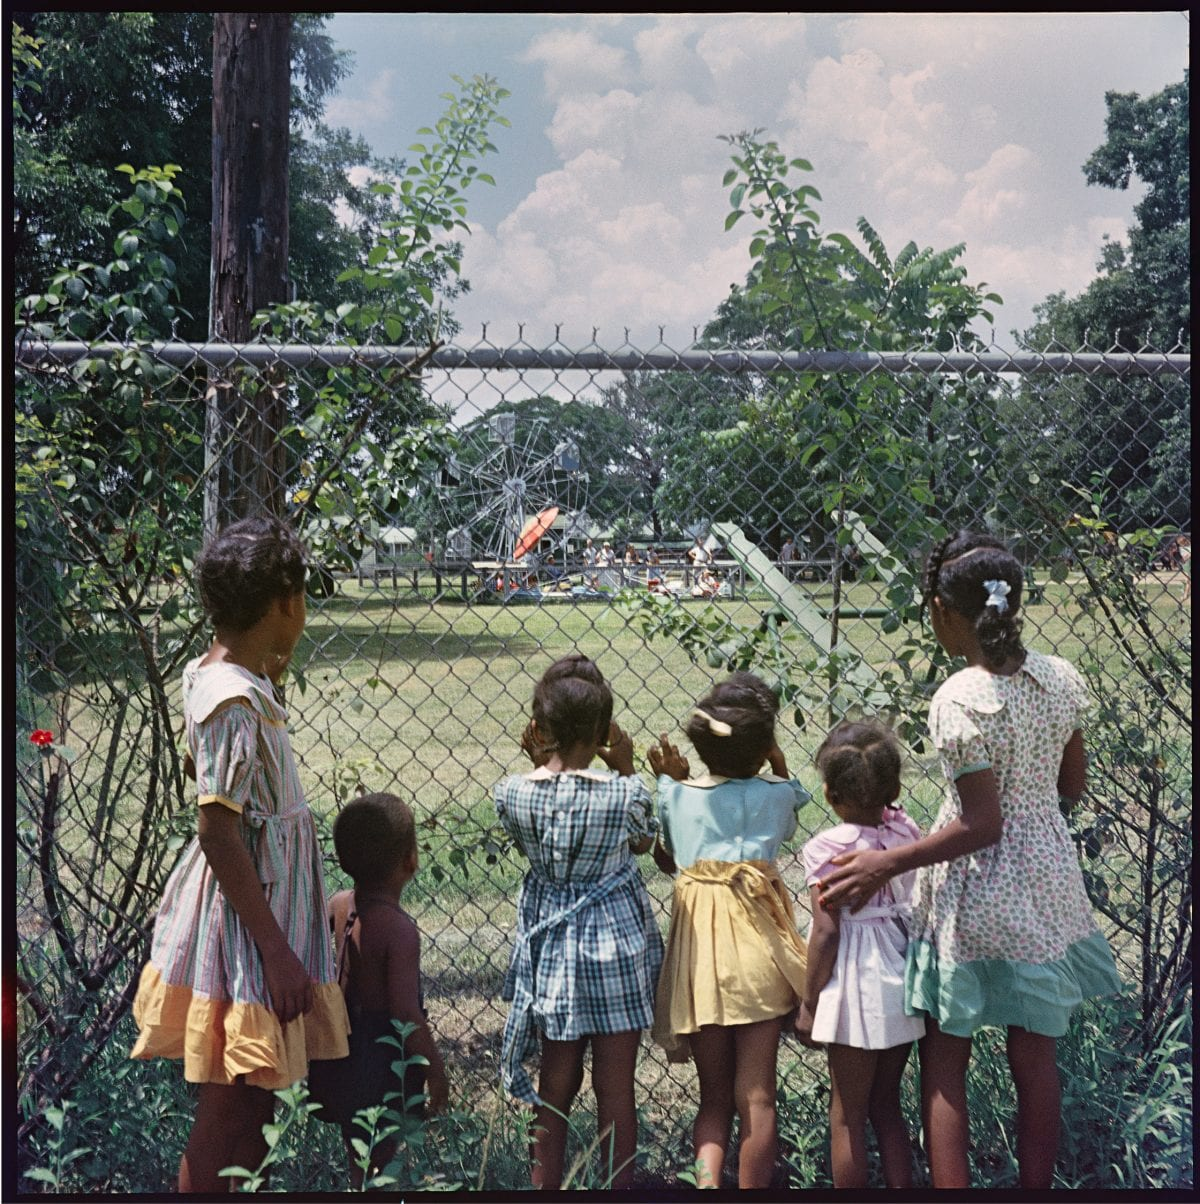 Gordon Parks (American, 1912–2006), Outside Looking In, Mobile, Alabama, 1956, courtesy of and copyright The Gordon Parks Foundation.